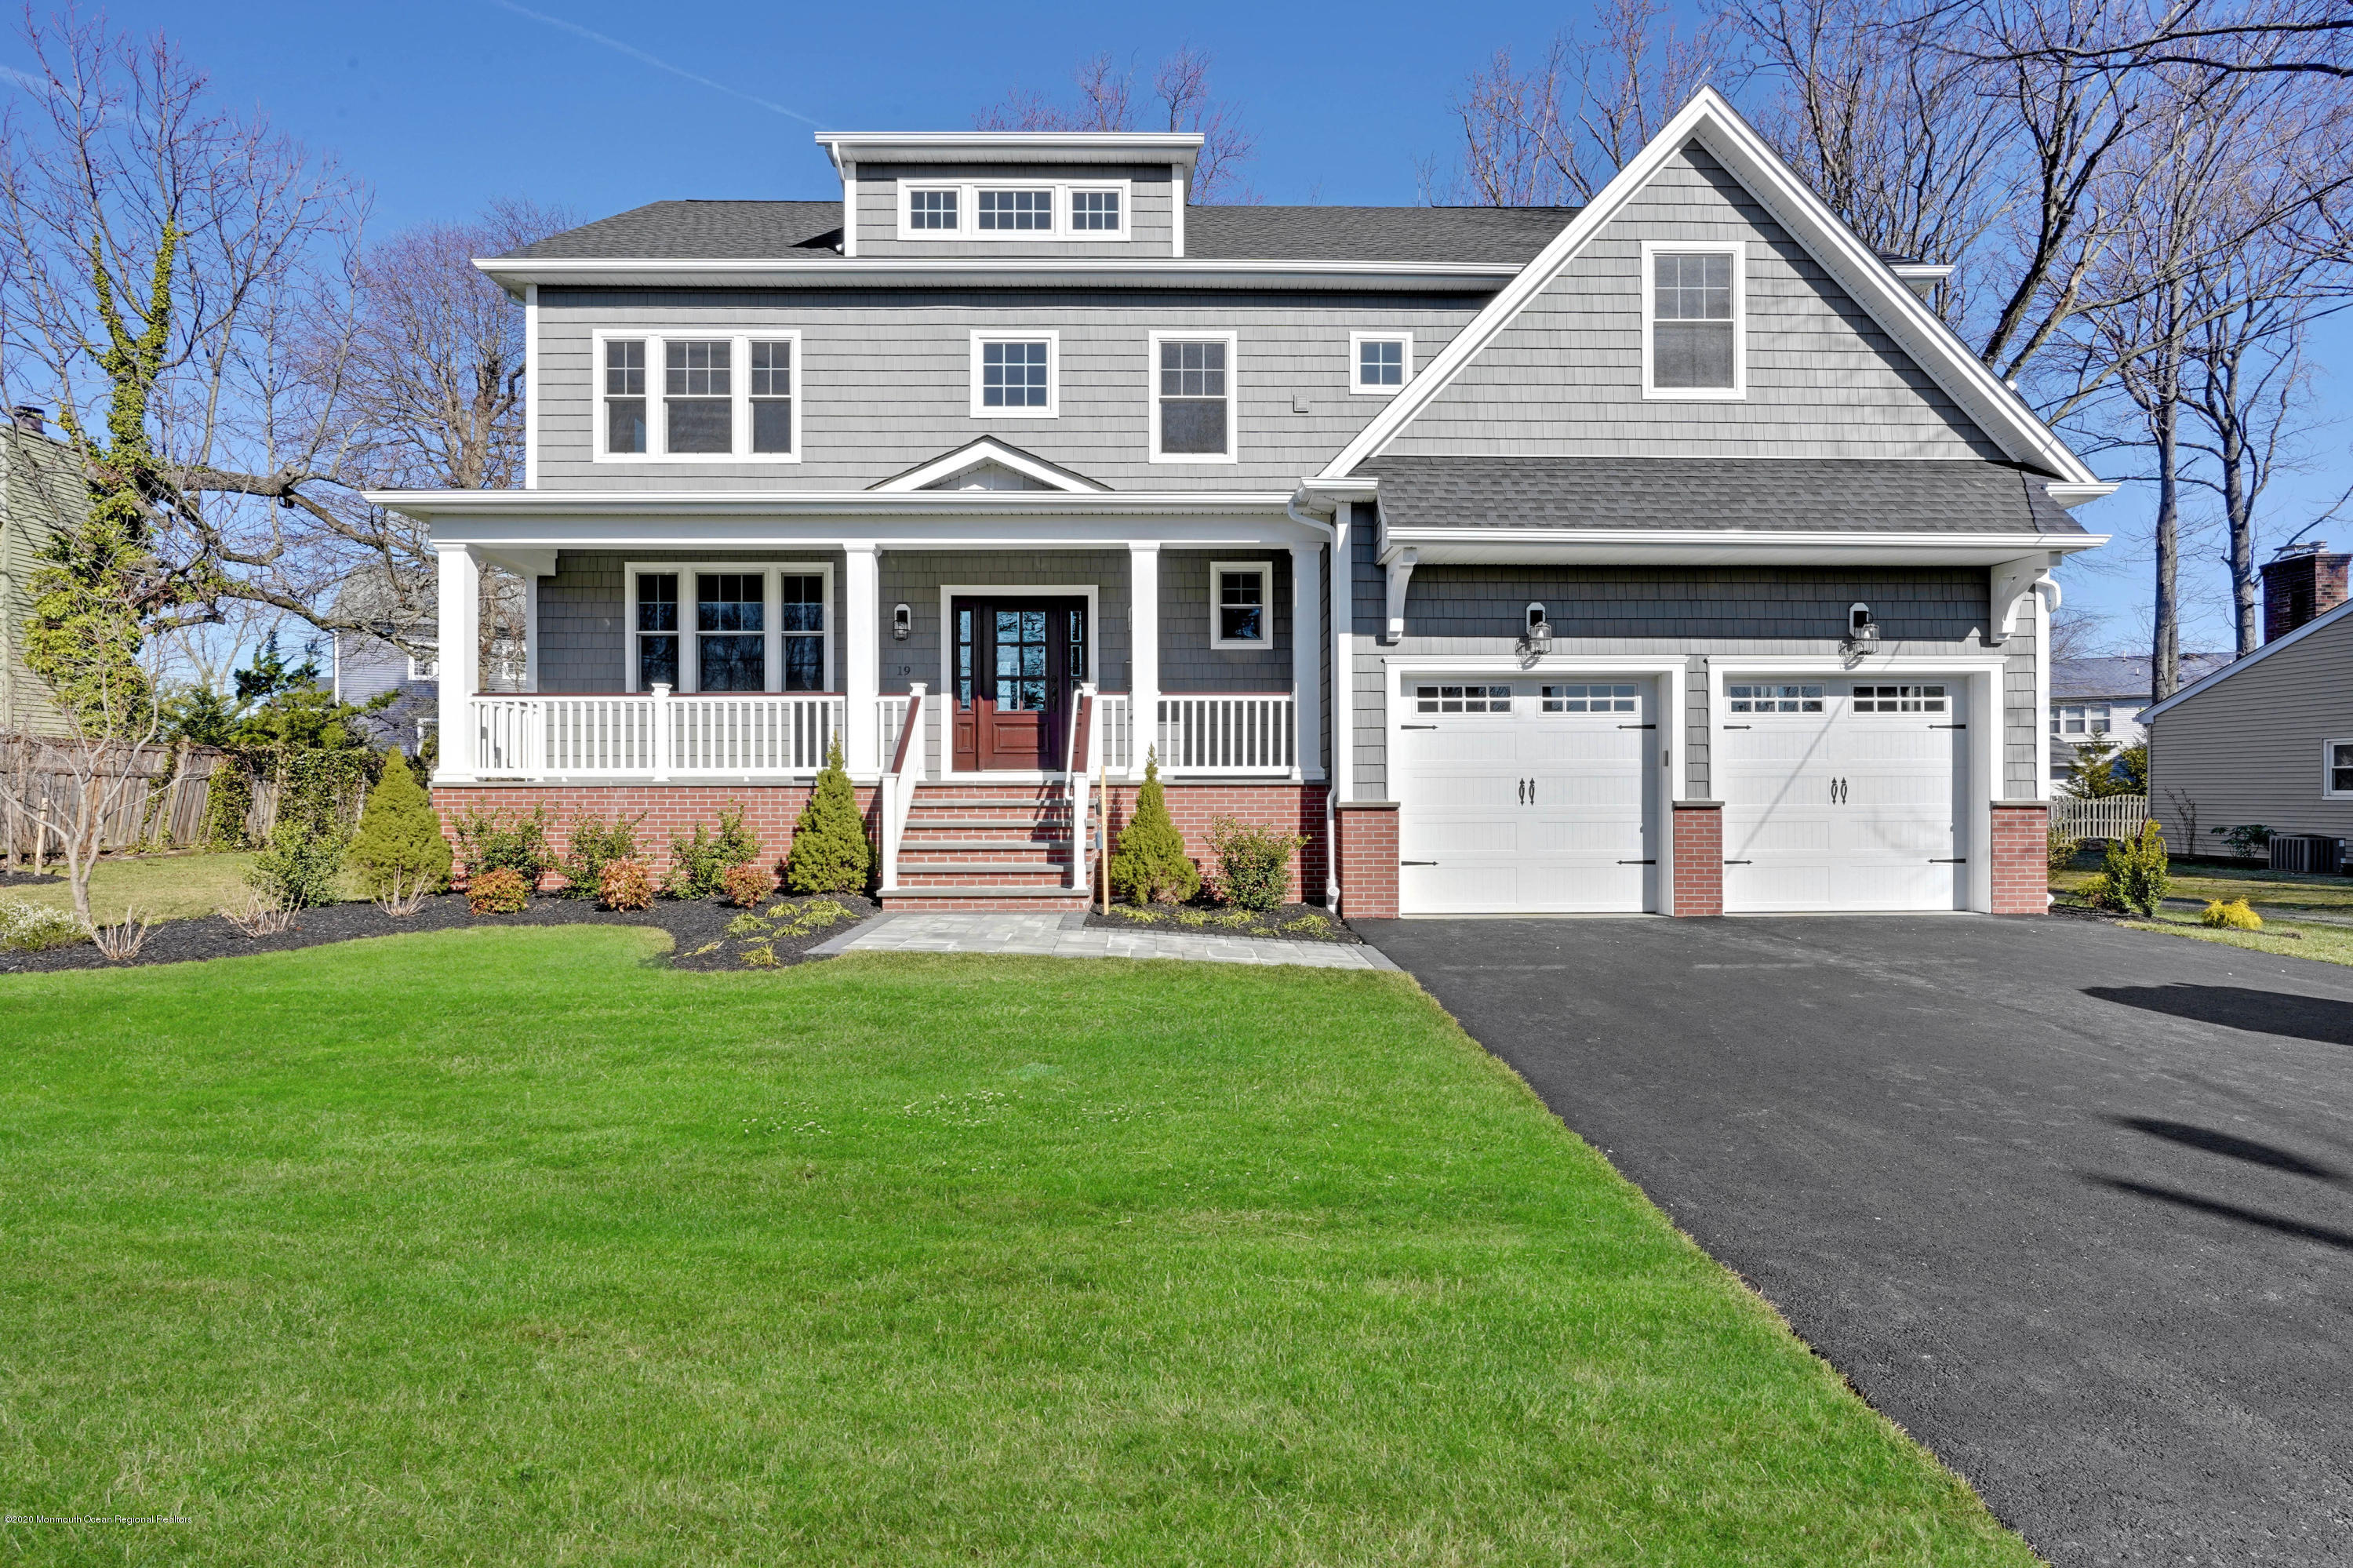 Photo of 19 Bungalow Place, Oceanport, NJ 07757